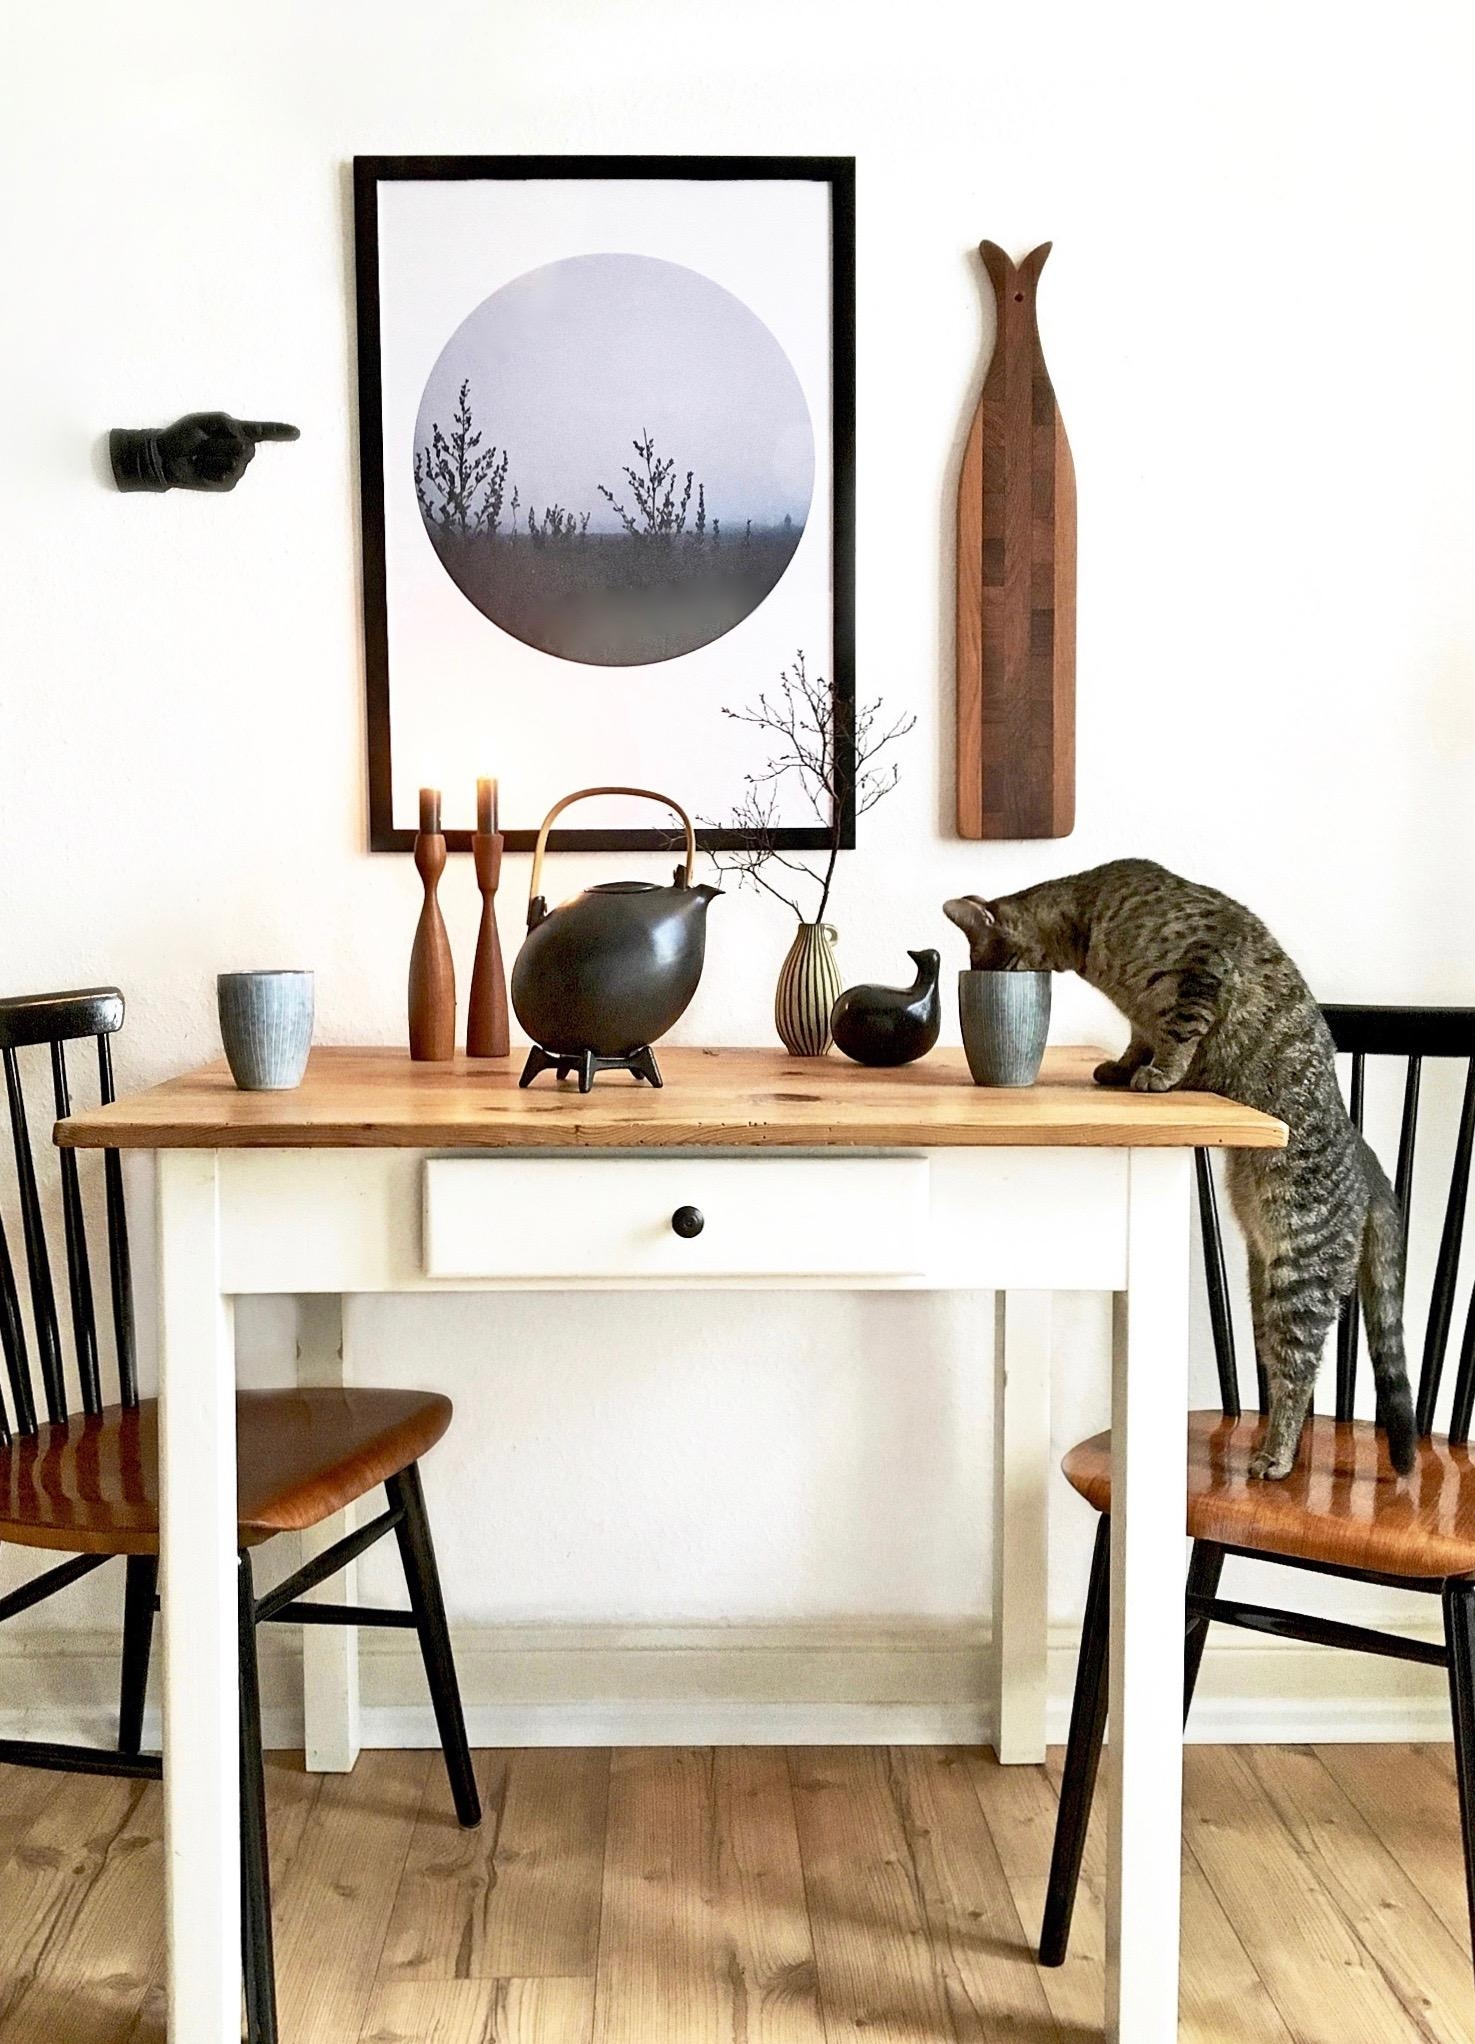 Coffee  time with cat and our new poster  kueche etsyshop altbauwohnung kuechenliebe midcentury katze  07aed252 00af 43a1 8107 0fa5ef0477d8